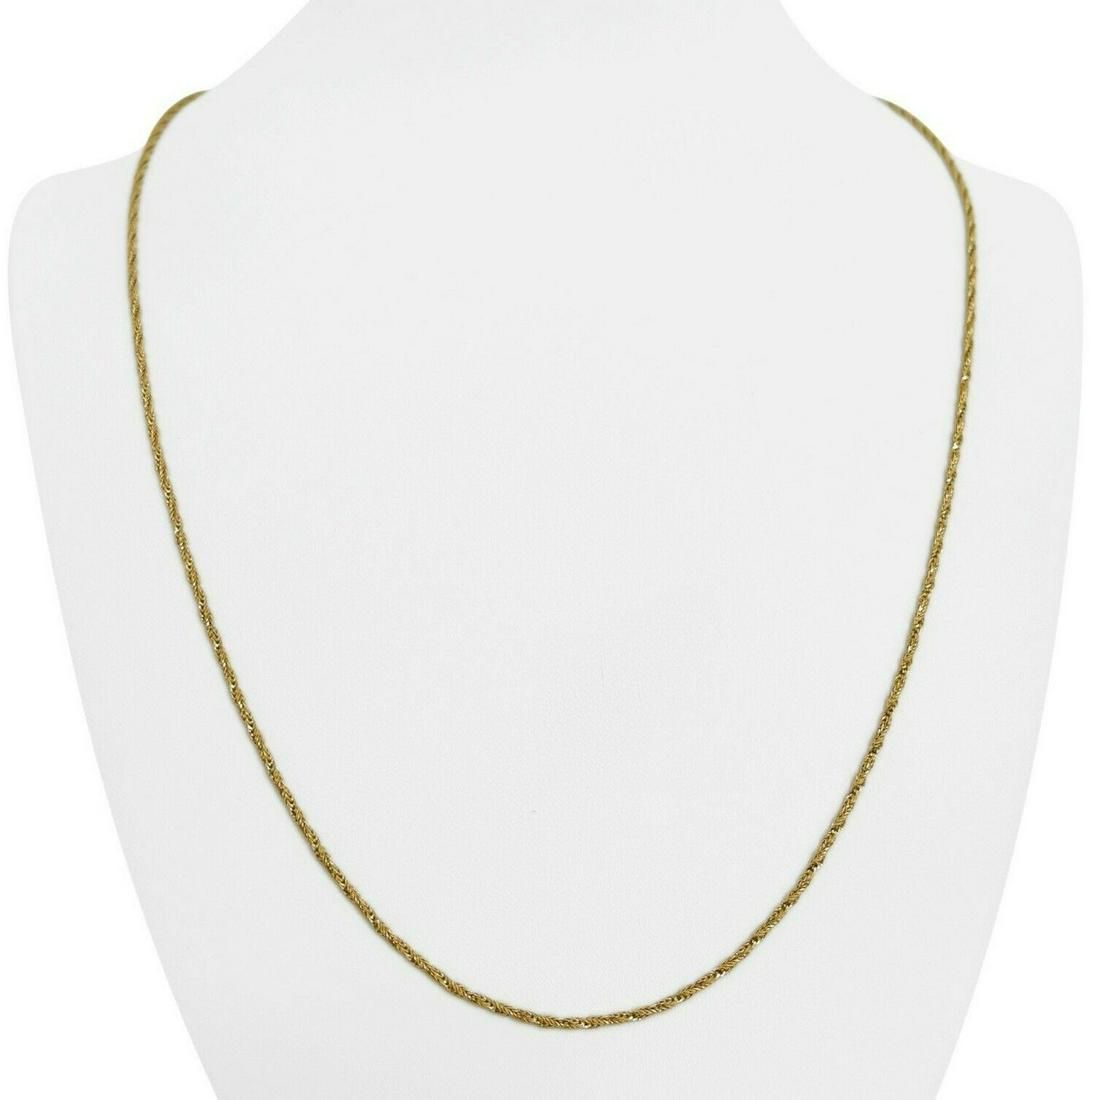 18k Yellow Gold 7.4g Sparkling 1.5mm Twisted Fancy Rope